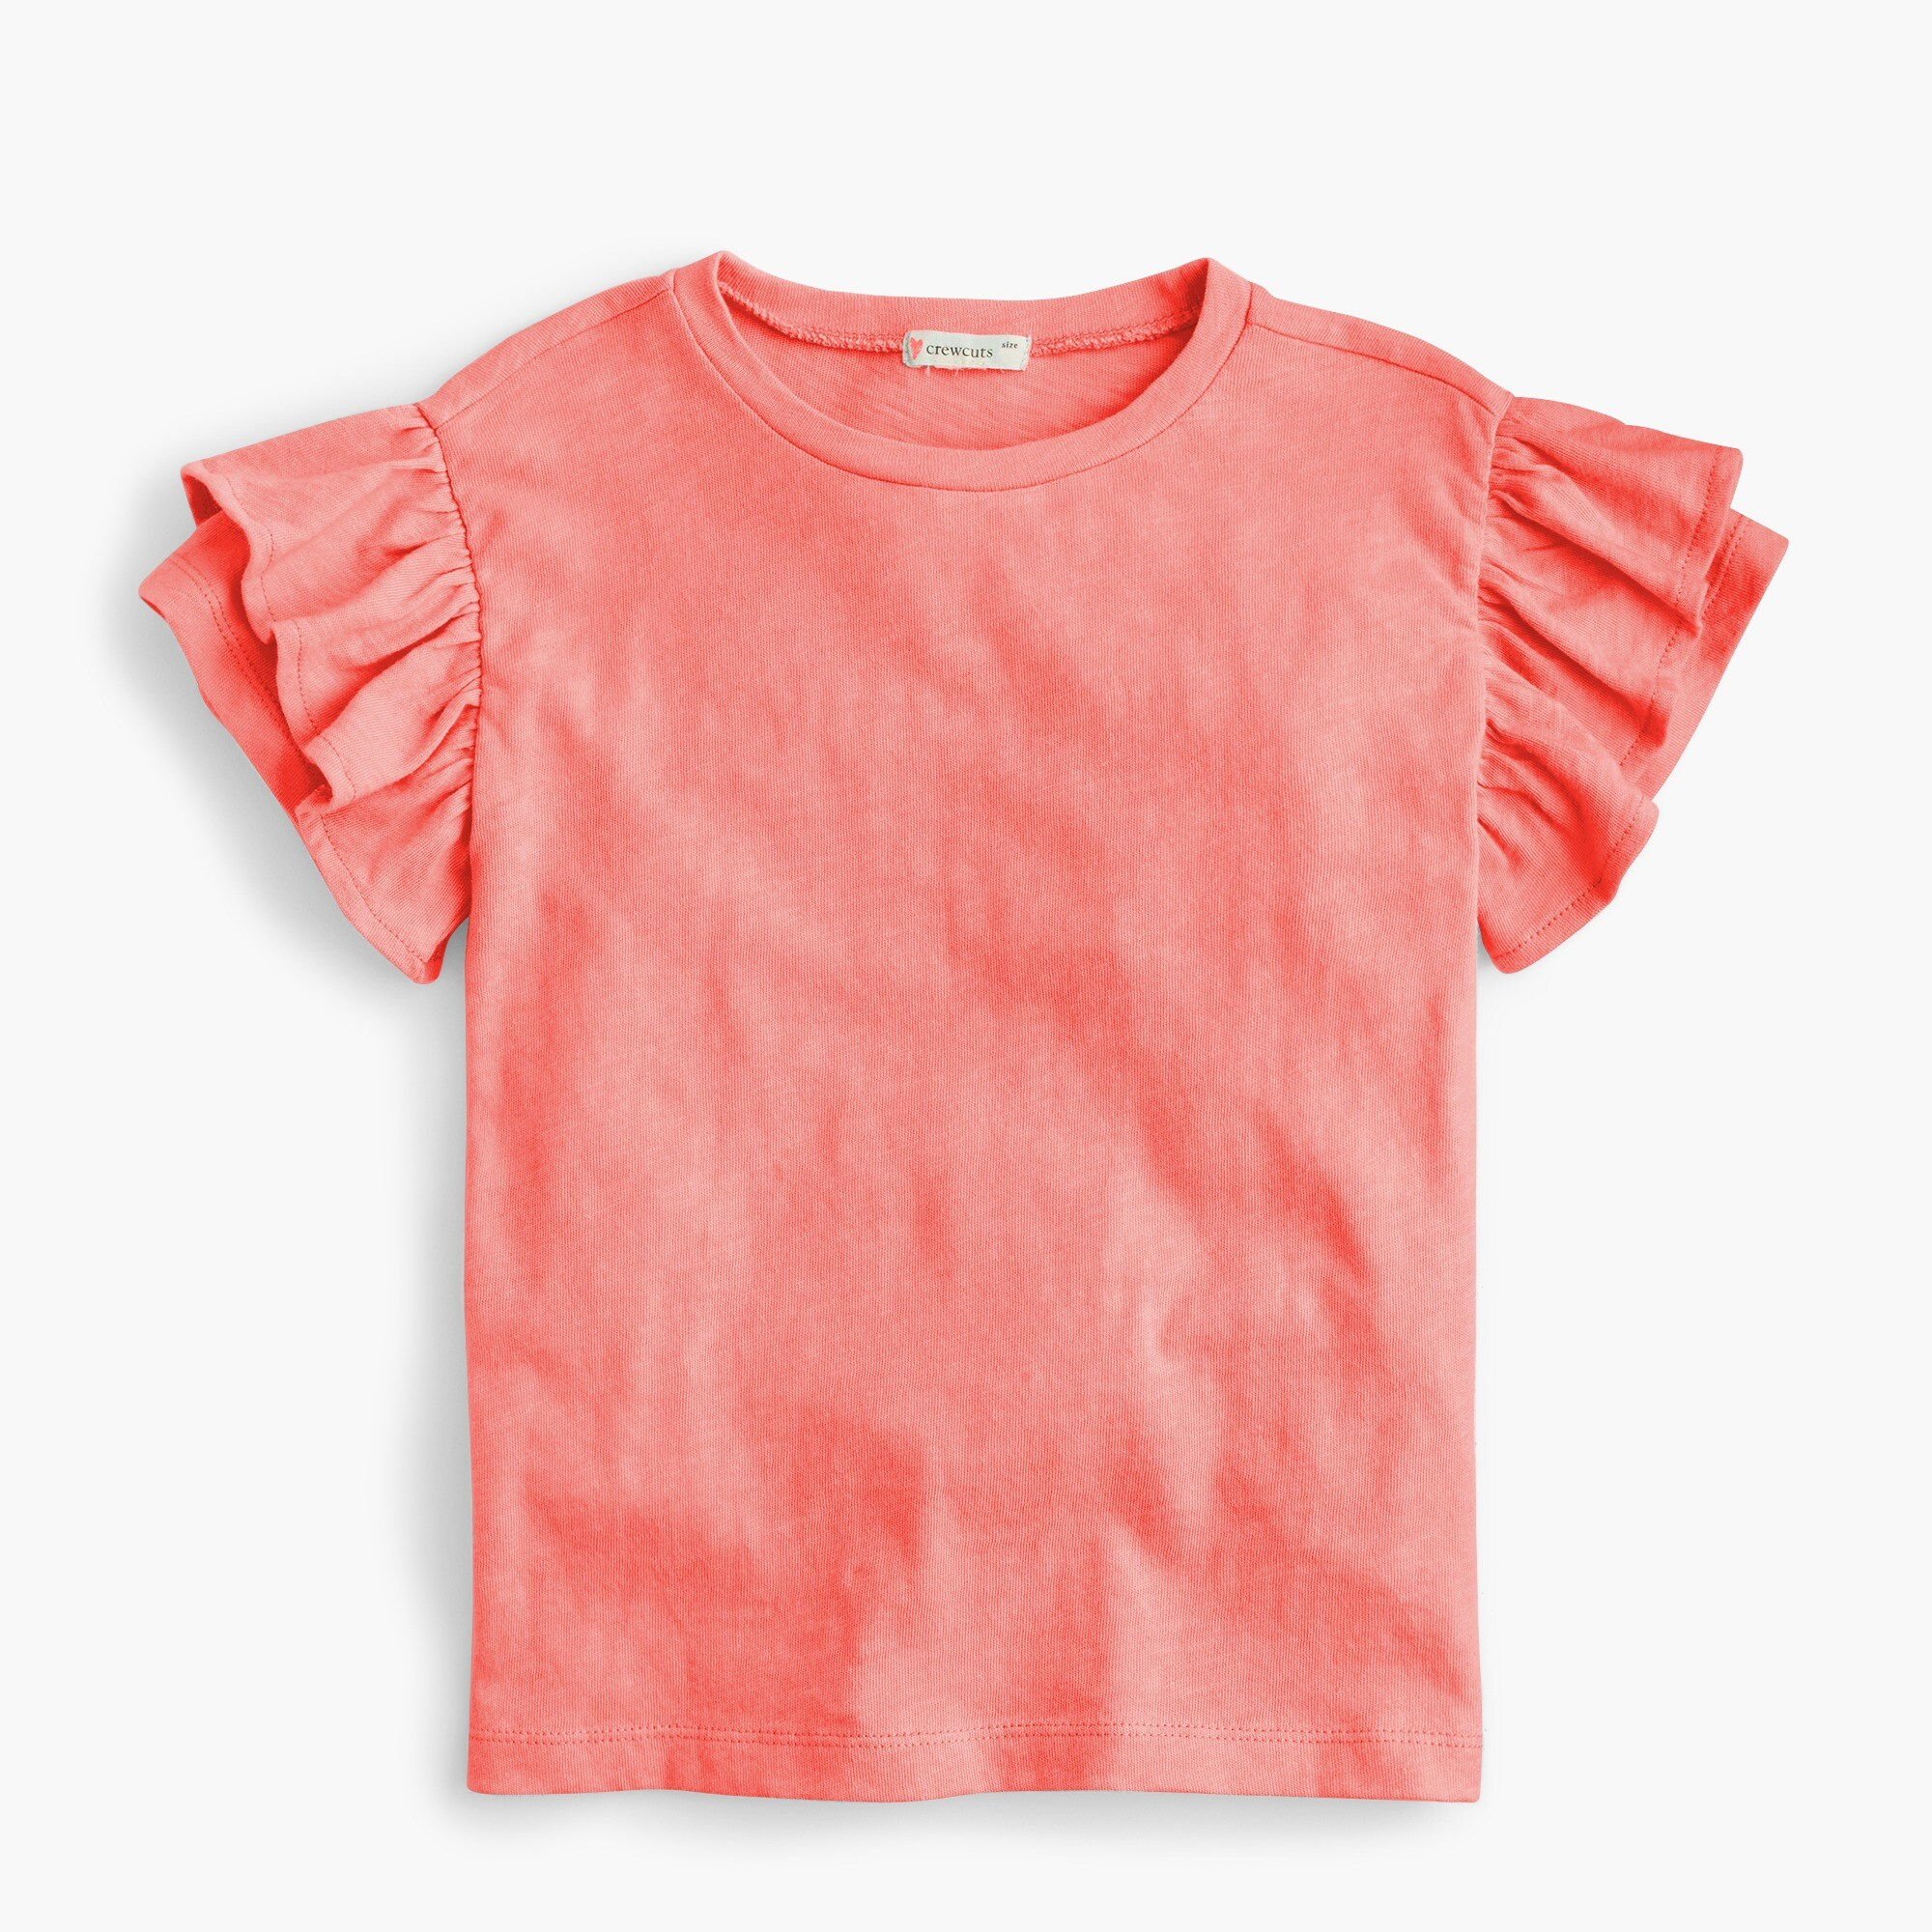 Girls' flutter-sleeve T-shirt girl new arrivals c